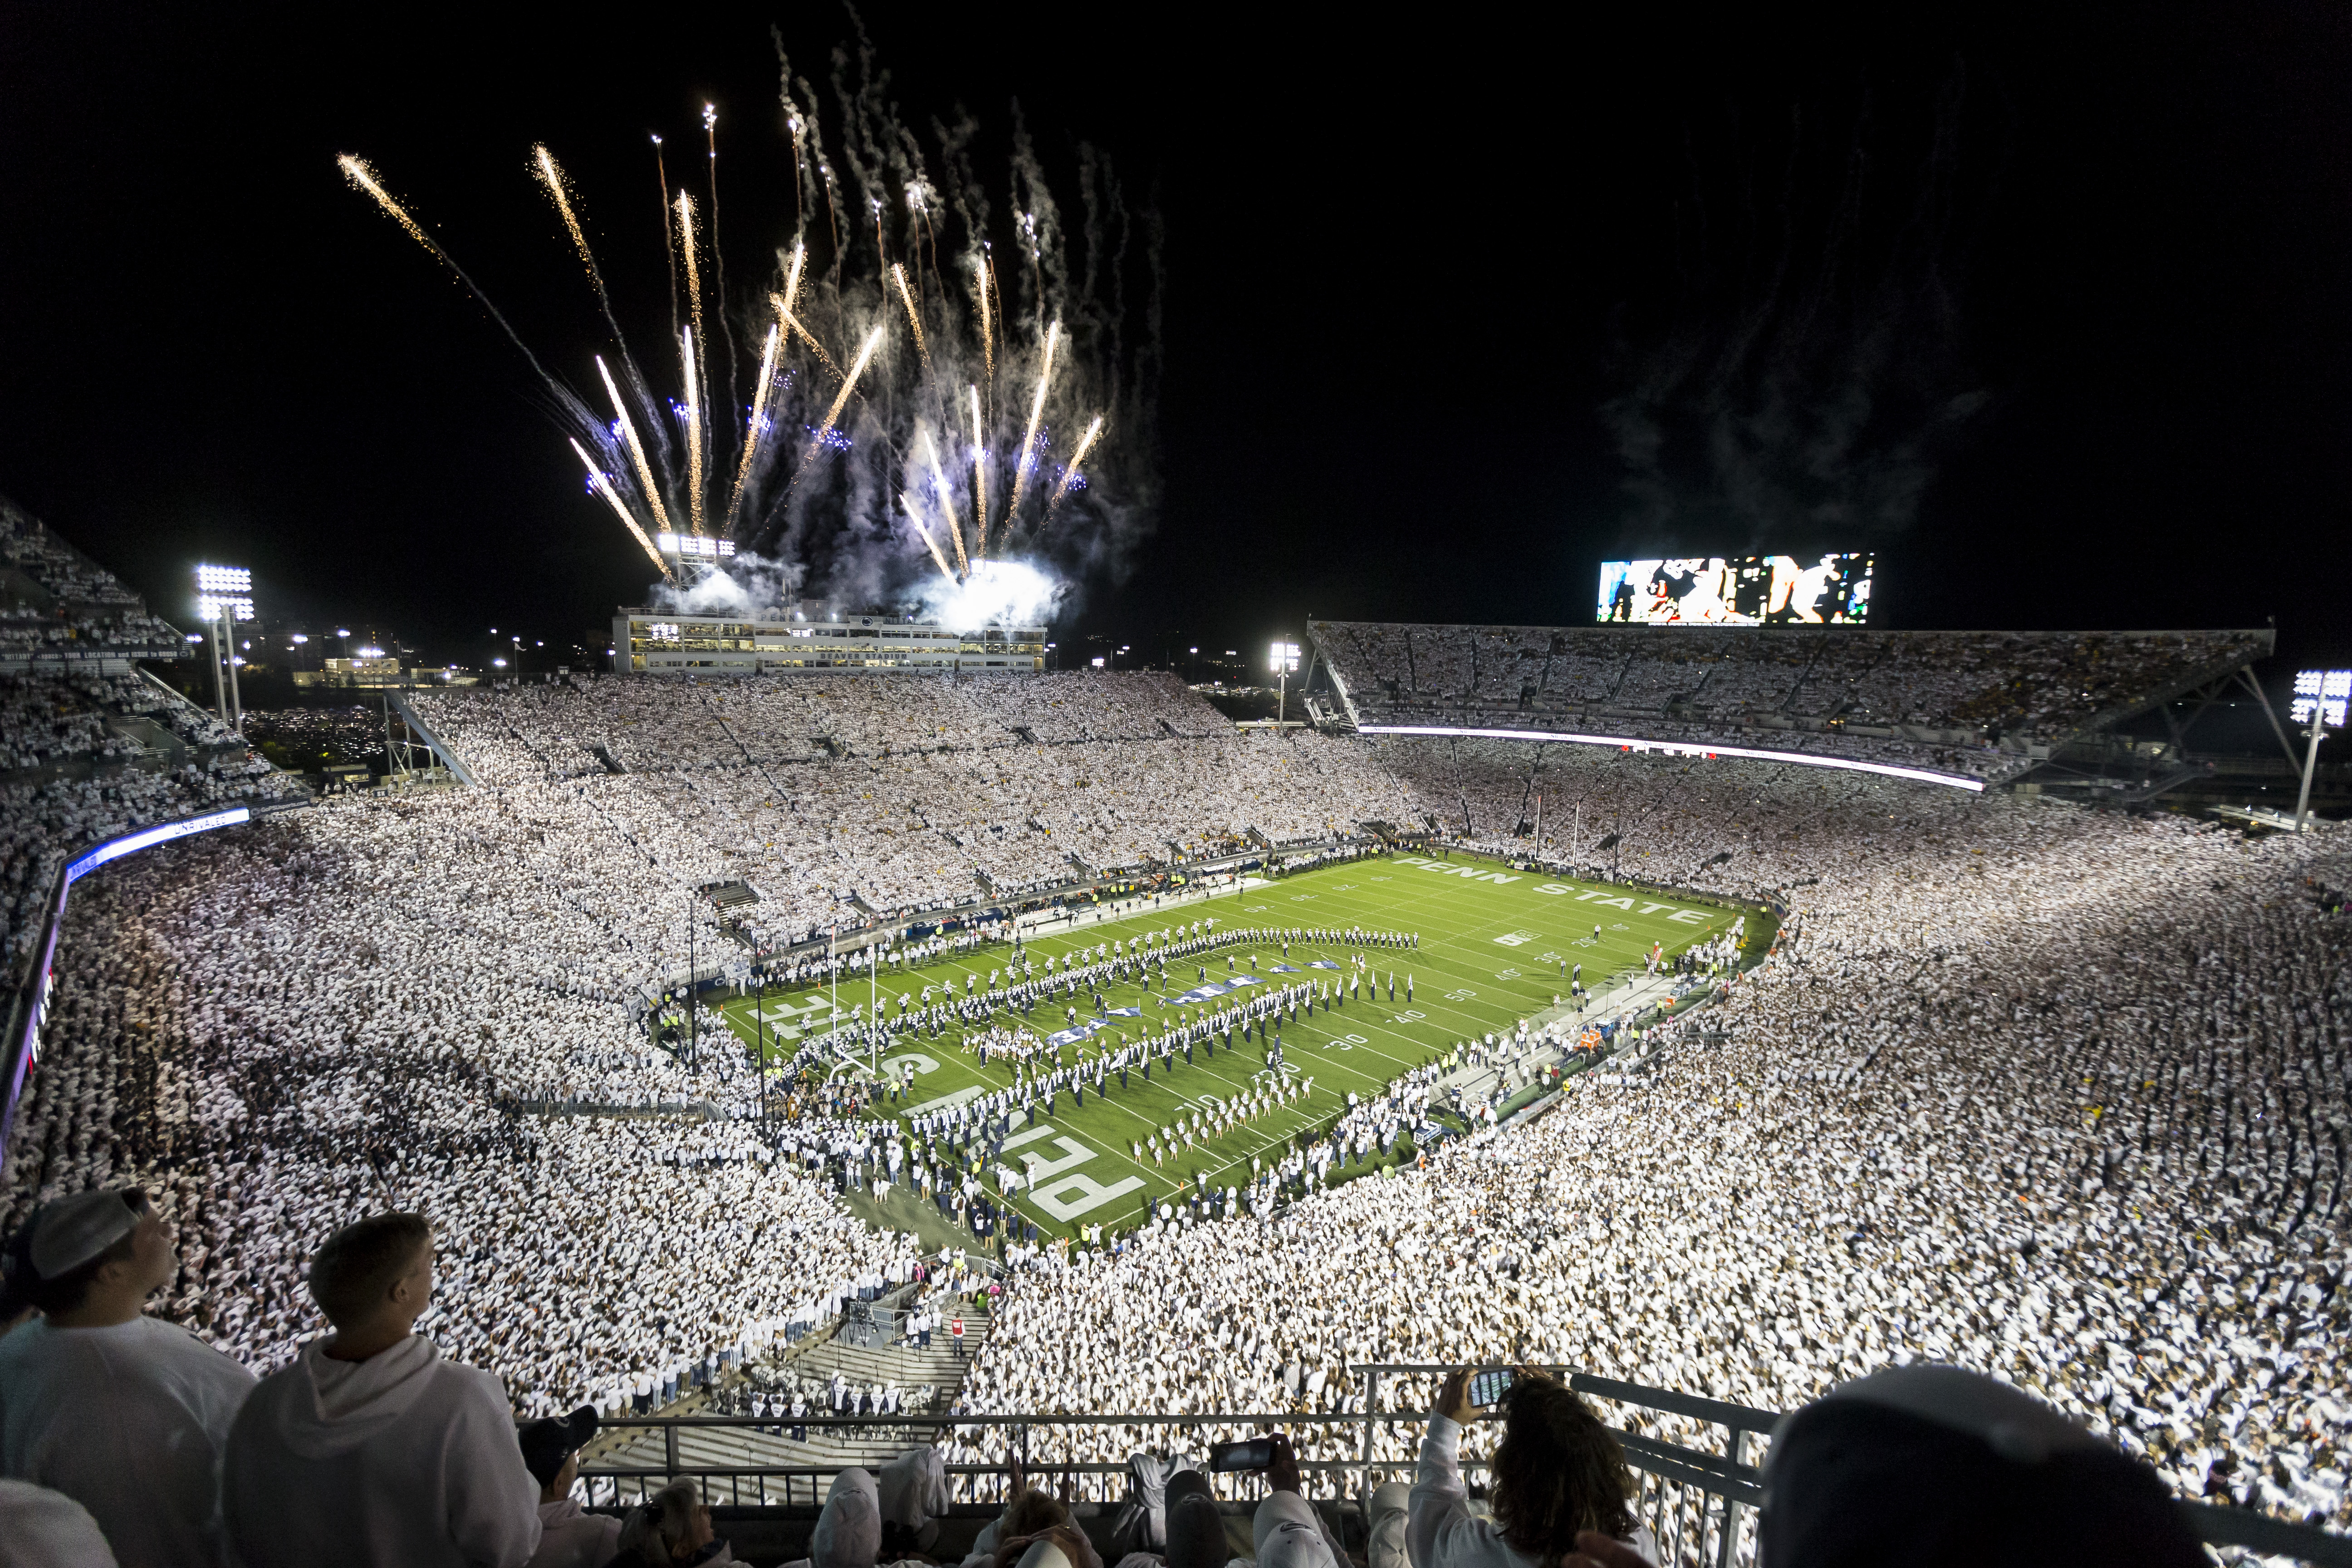 Penn State issues warning of counterfeit tickets before Michigan game